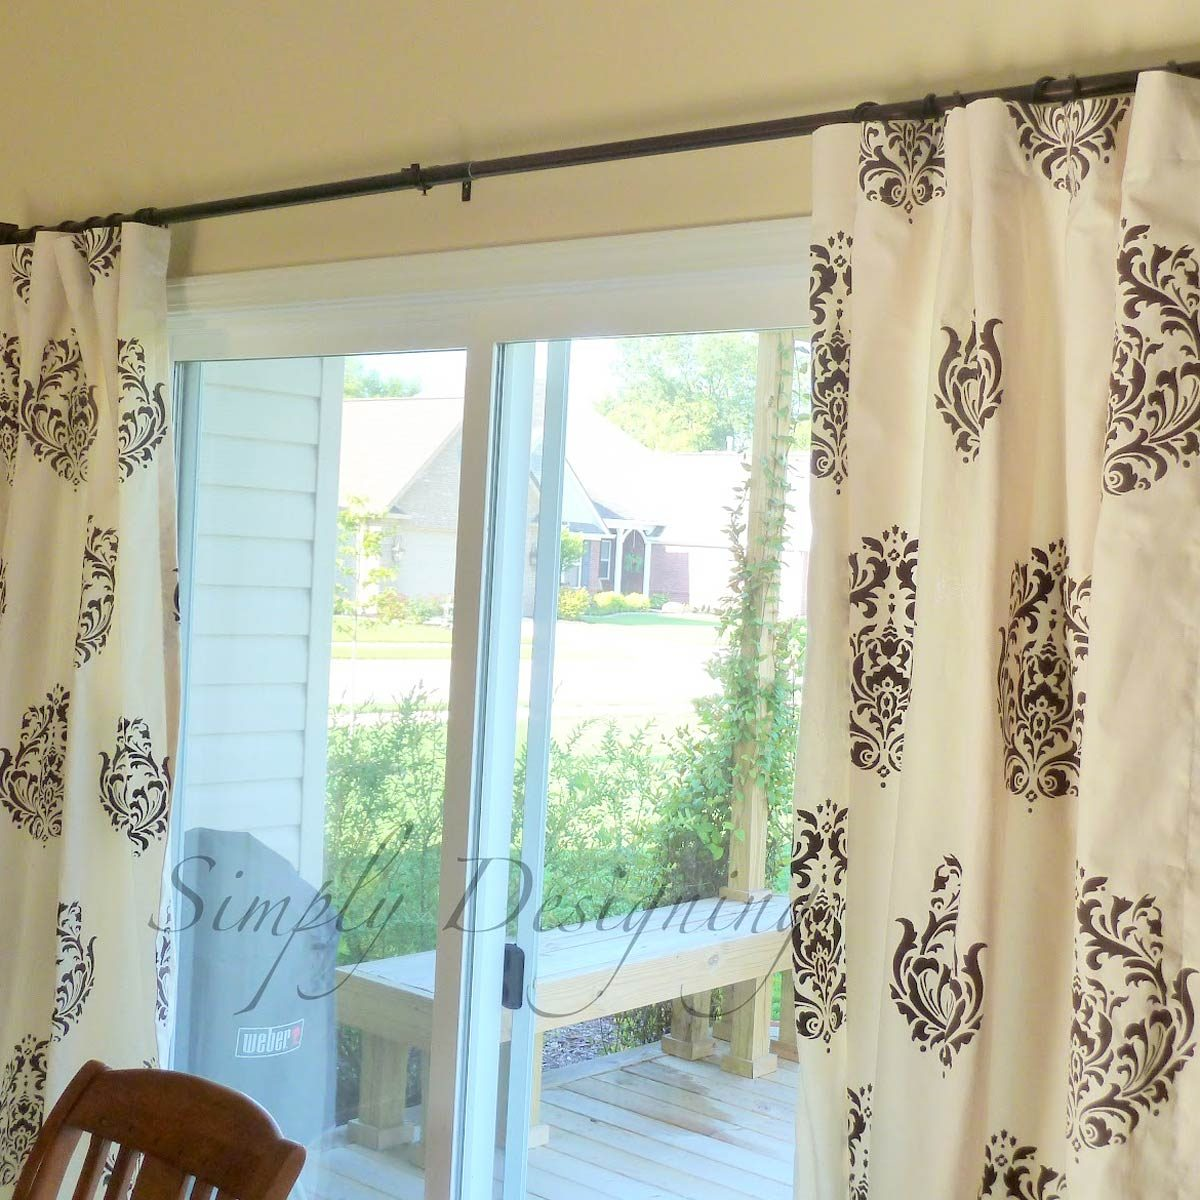 stencil-curtains diy curtain ideas